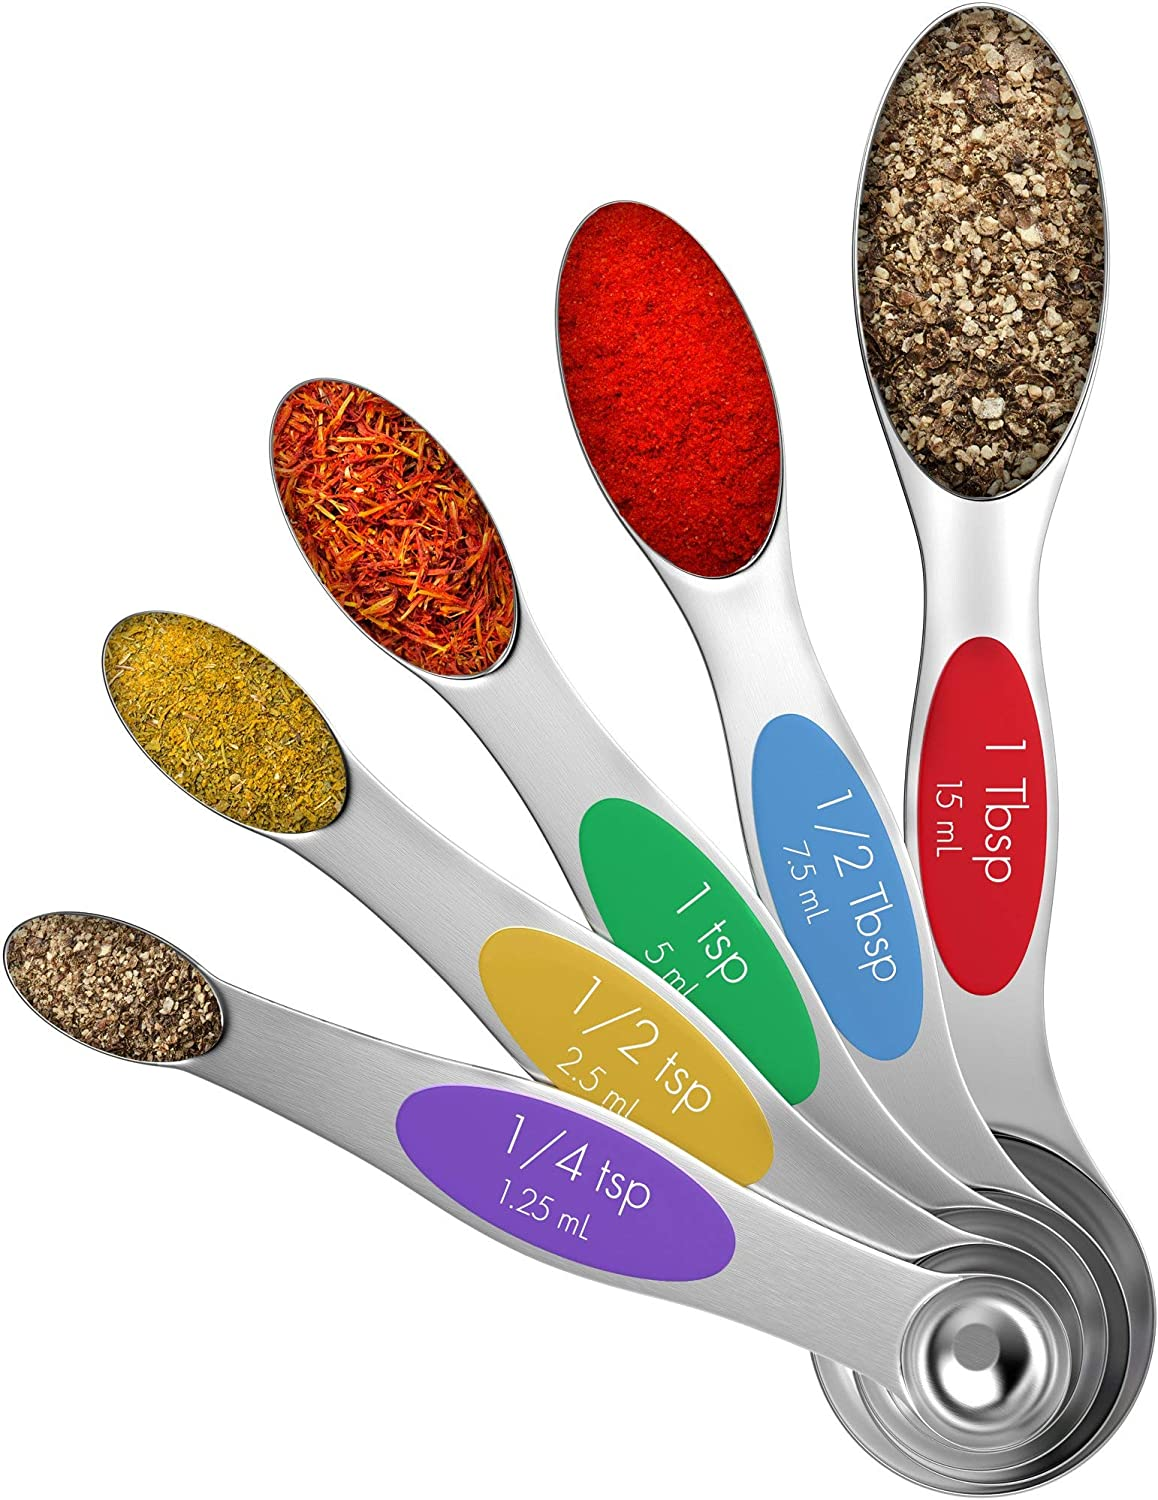 Vremi Magnetic Stainless Steel Measuring Spoons Price reduction 5 - Metal National products of Set